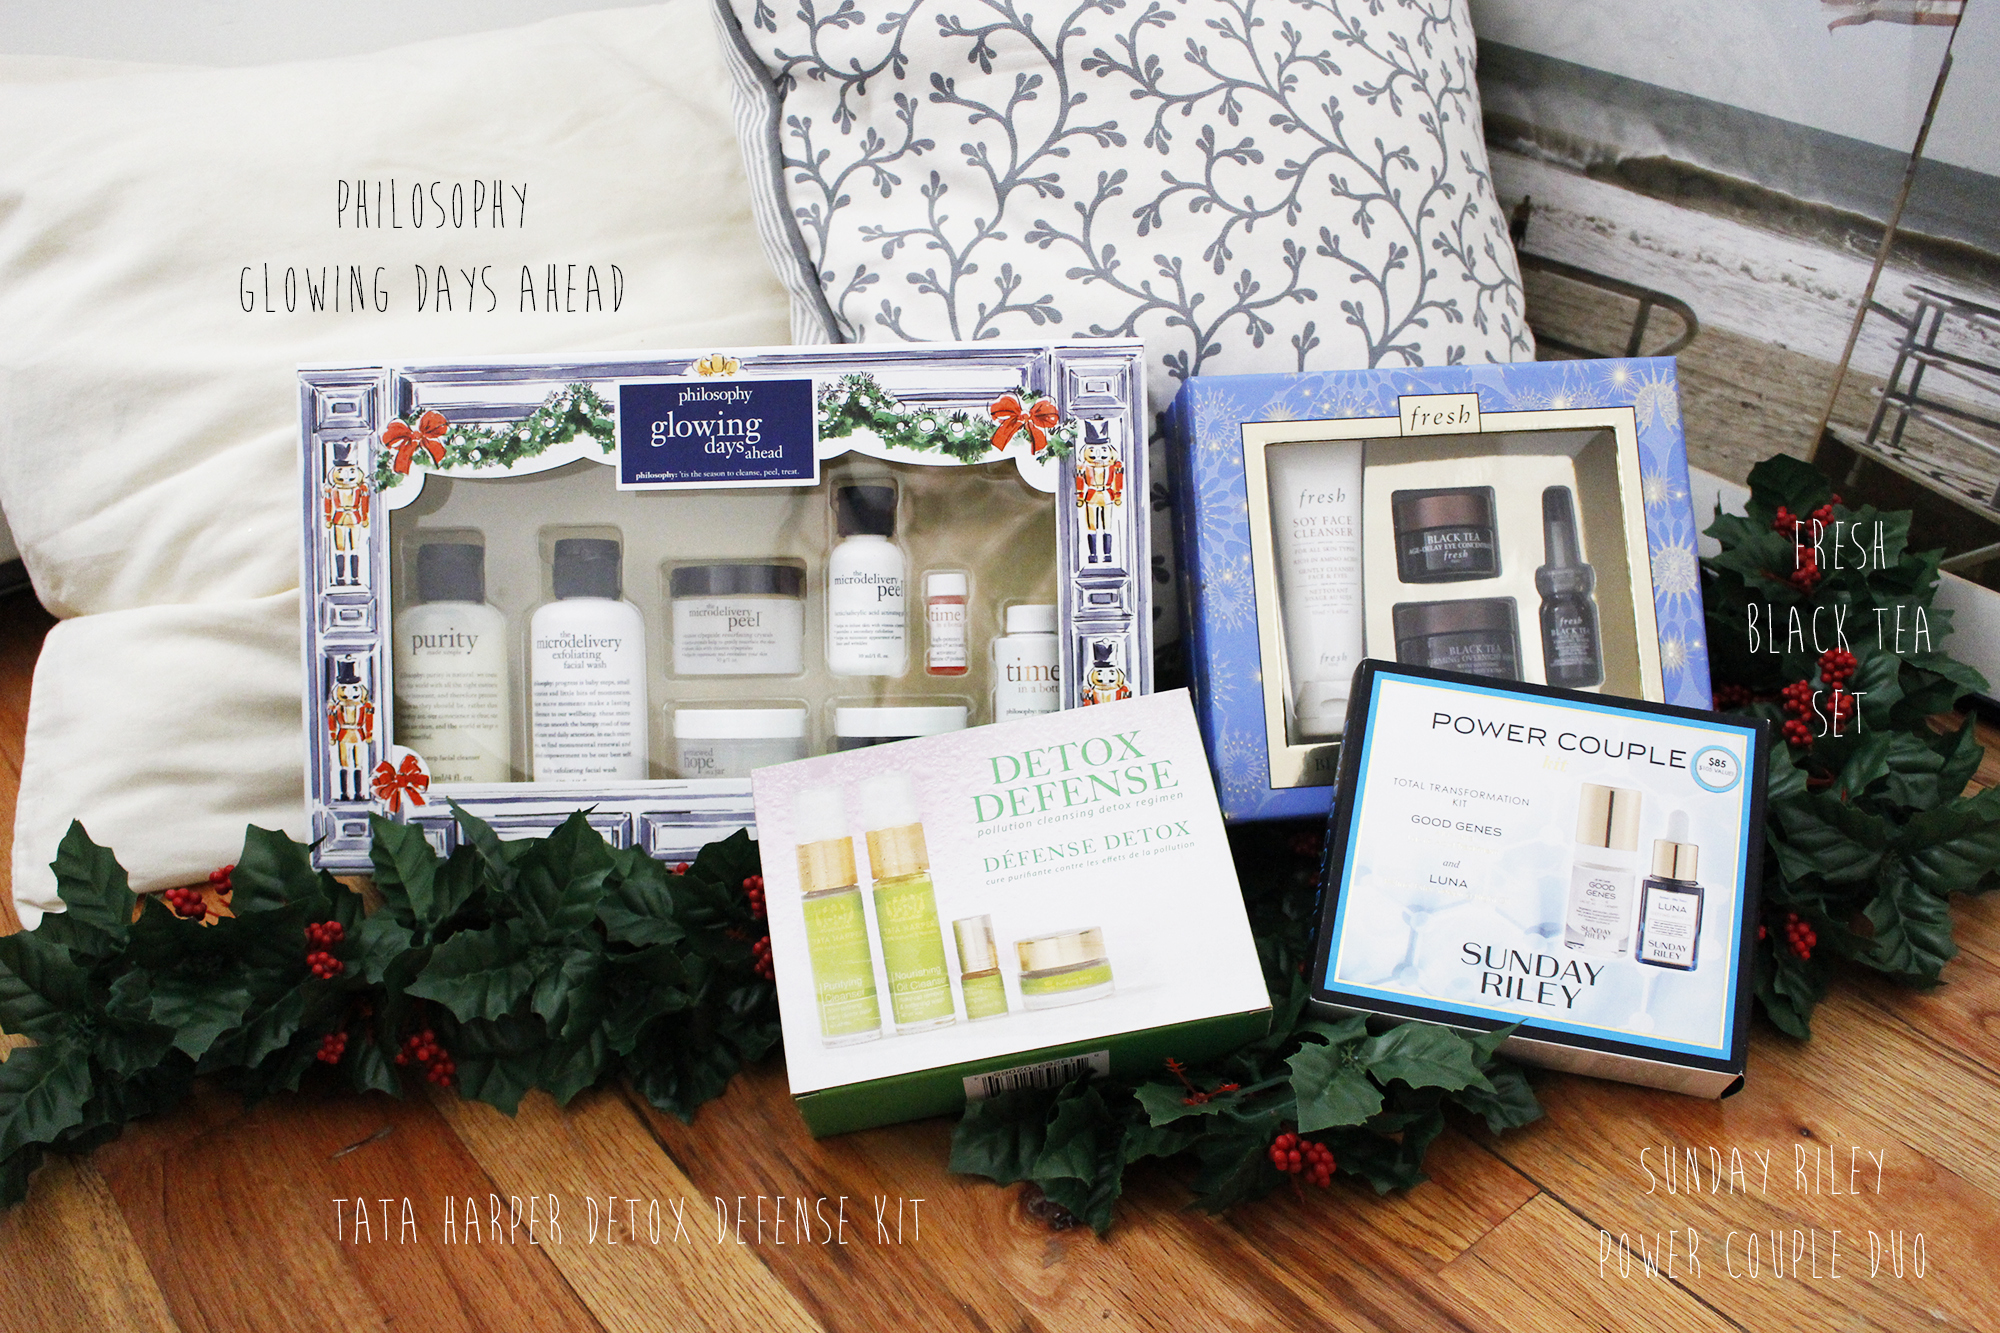 You can't go wrong with skincare gift sets!